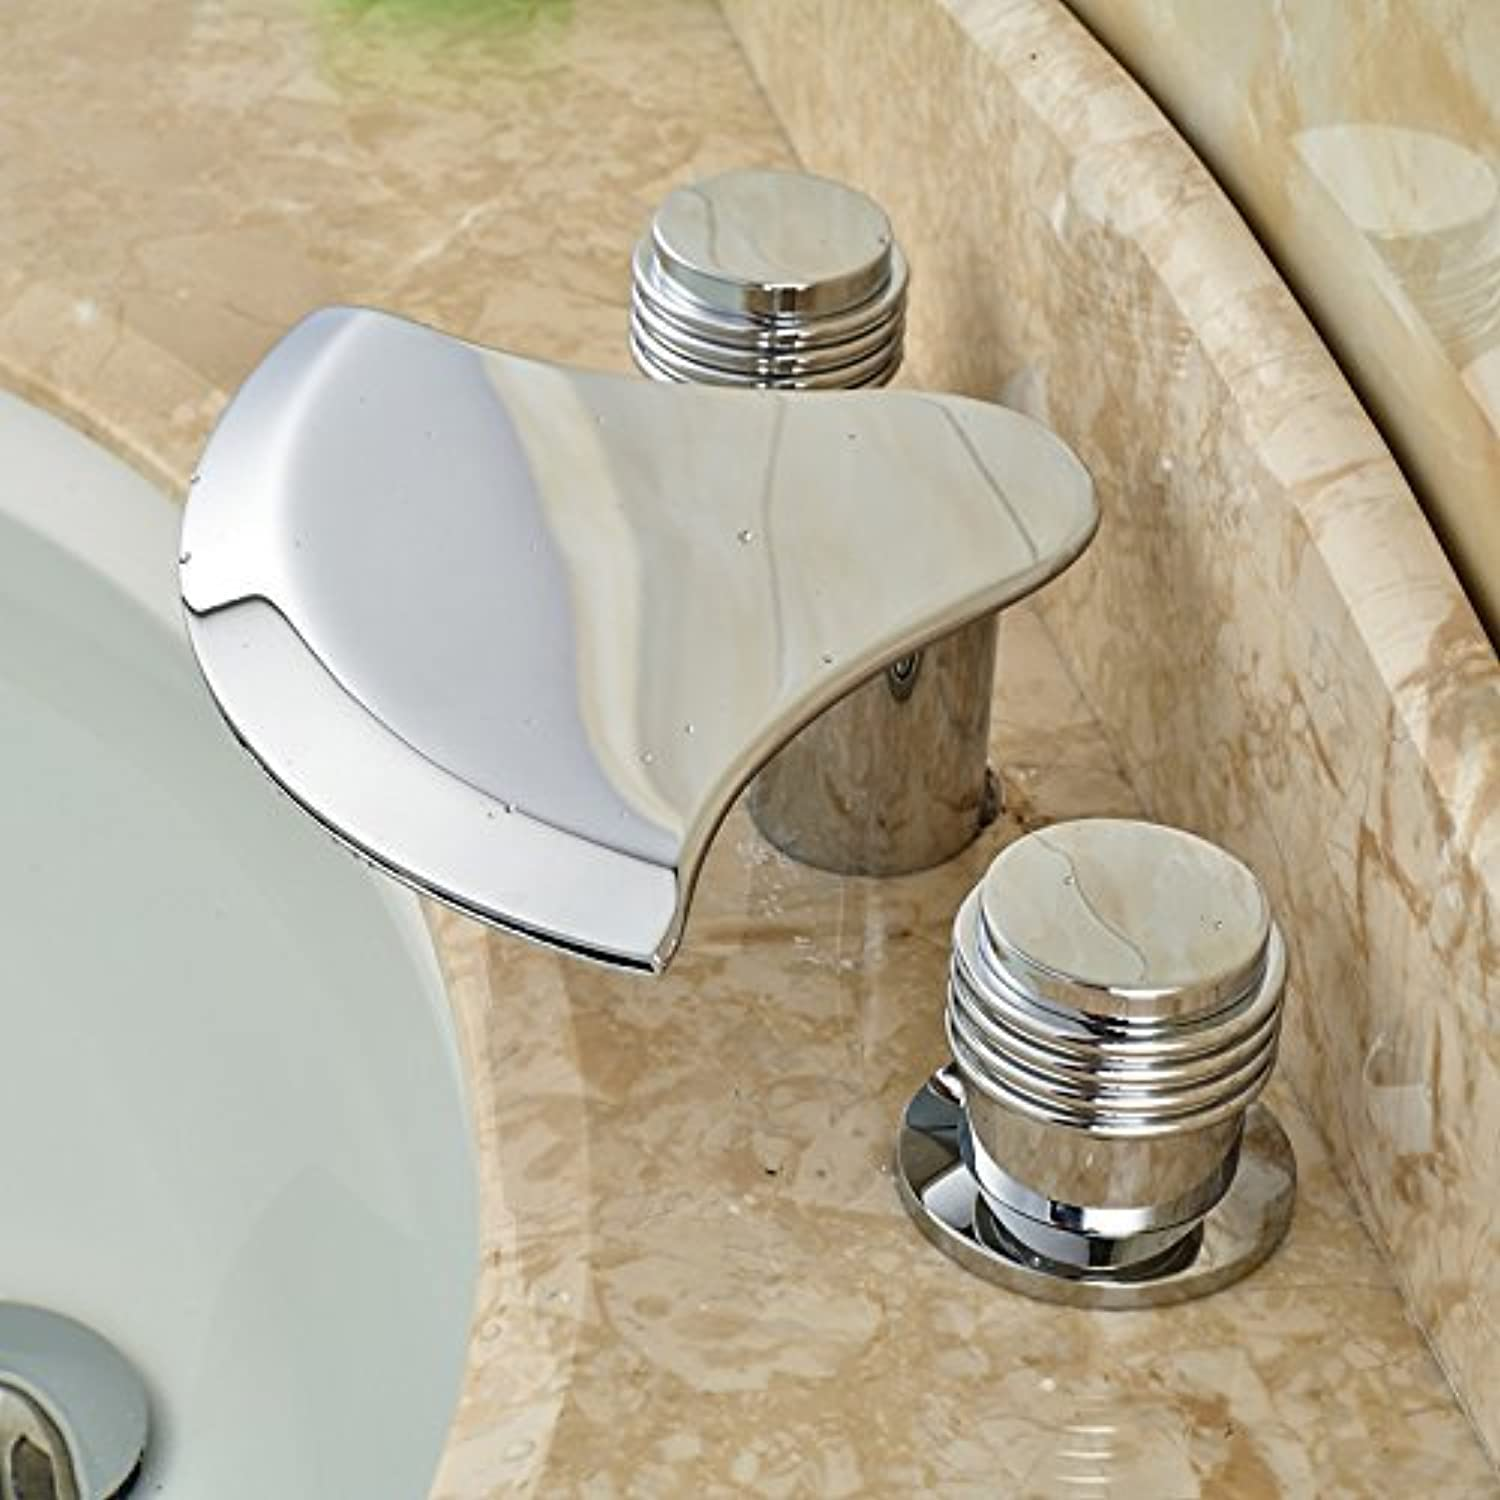 Modern Creative Waterfall spout Mount Bridge of wash Basin Faucet Bathroom Kitchen taps Wide Spread Dual Control